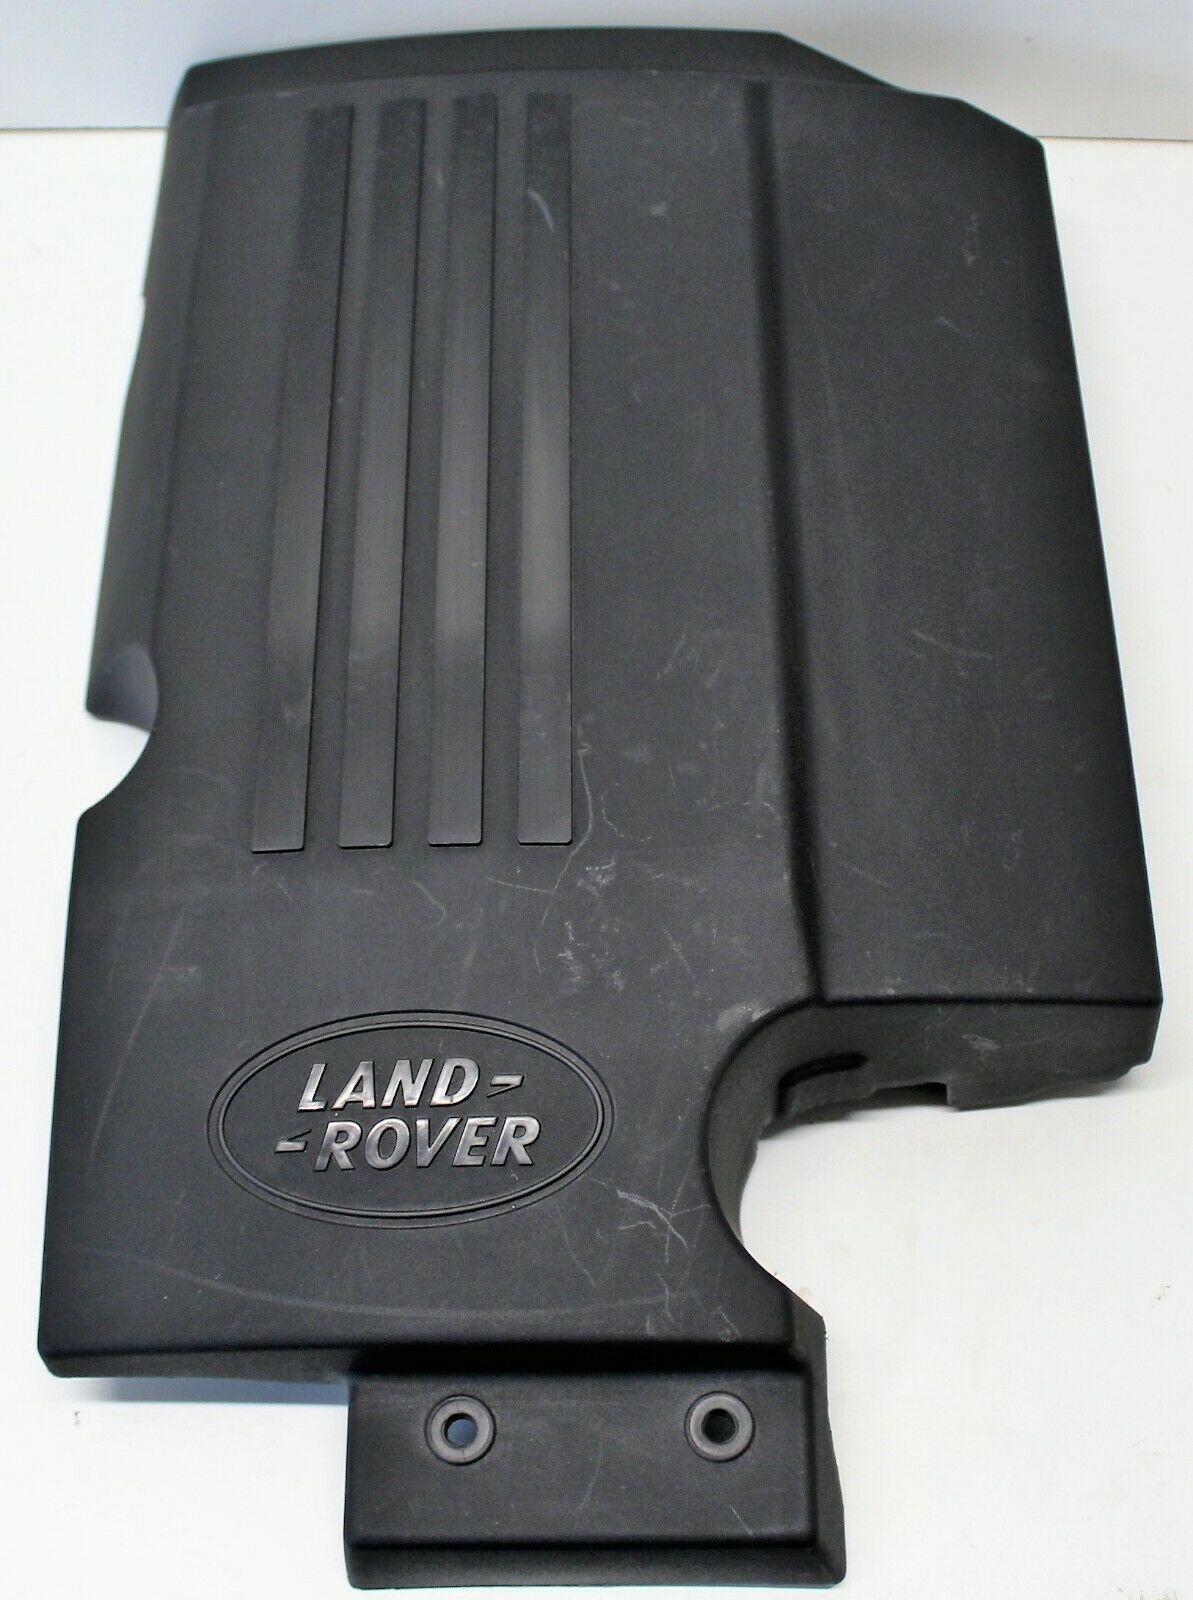 LAND ROVER DEFENDER 2.2 TDCI ENGINE COVER LR029710's featured image